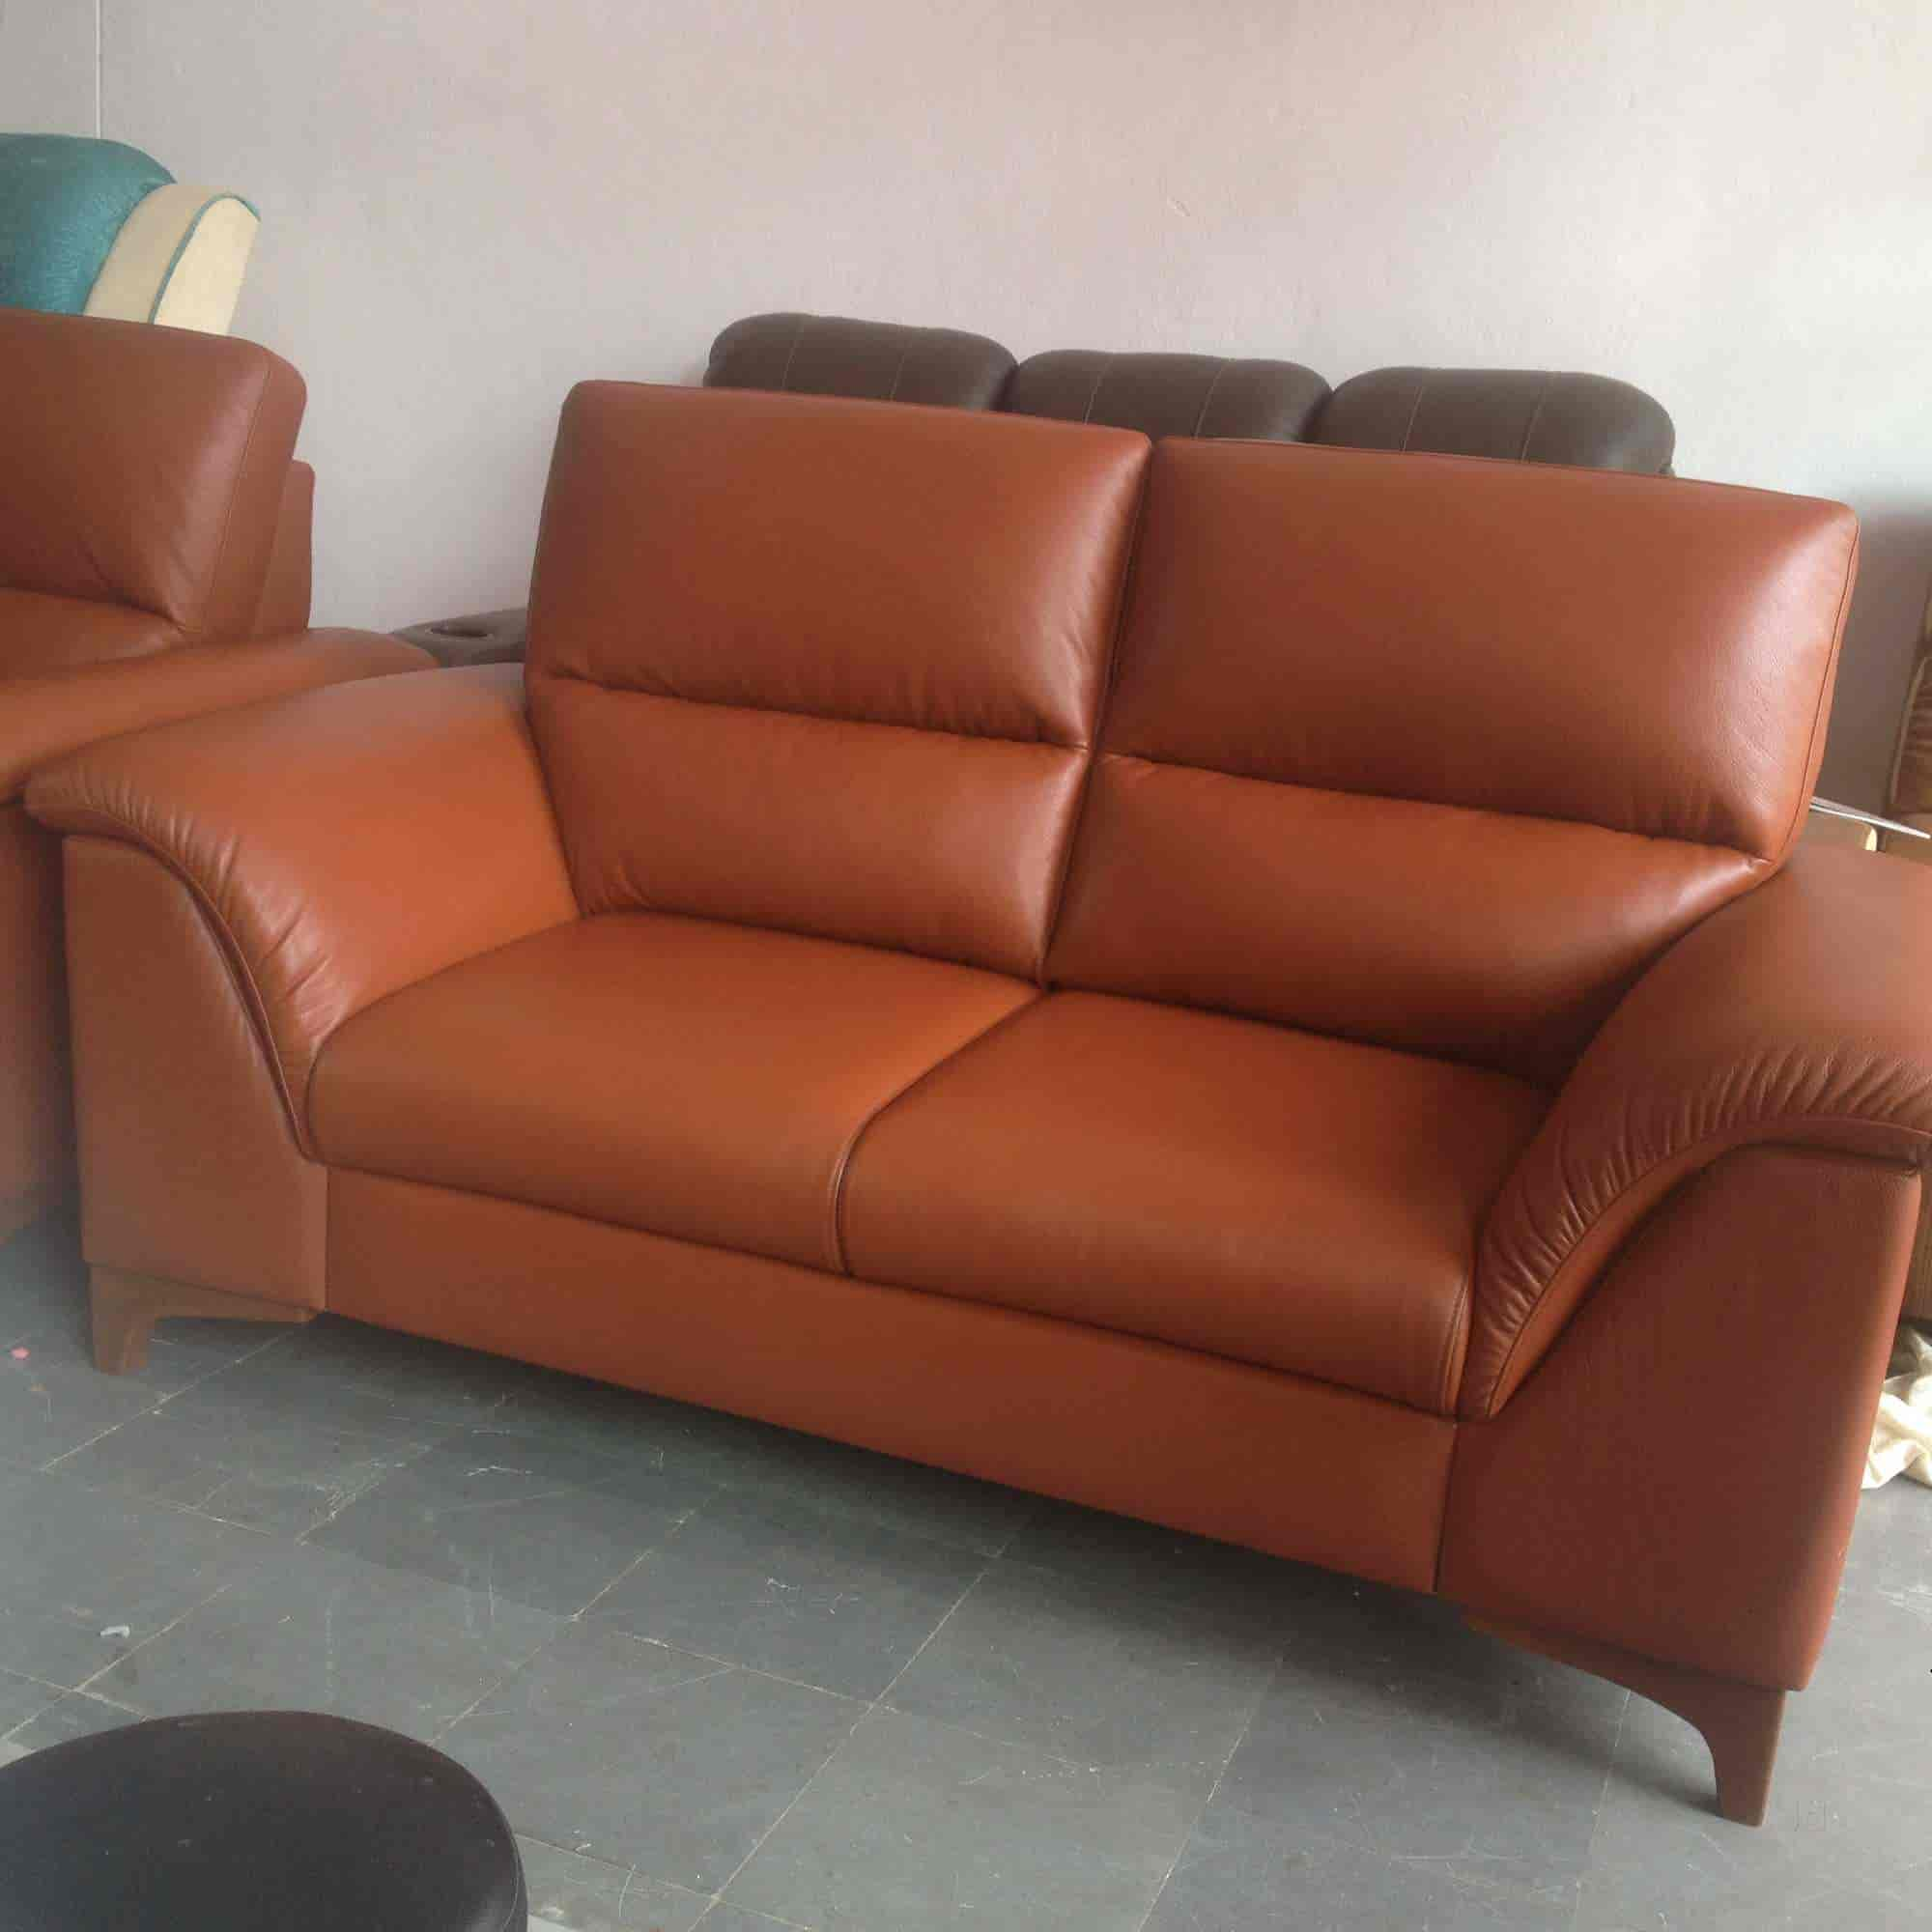 N Designs Furniture Safilguda Malkajgiri Recliner Sofa